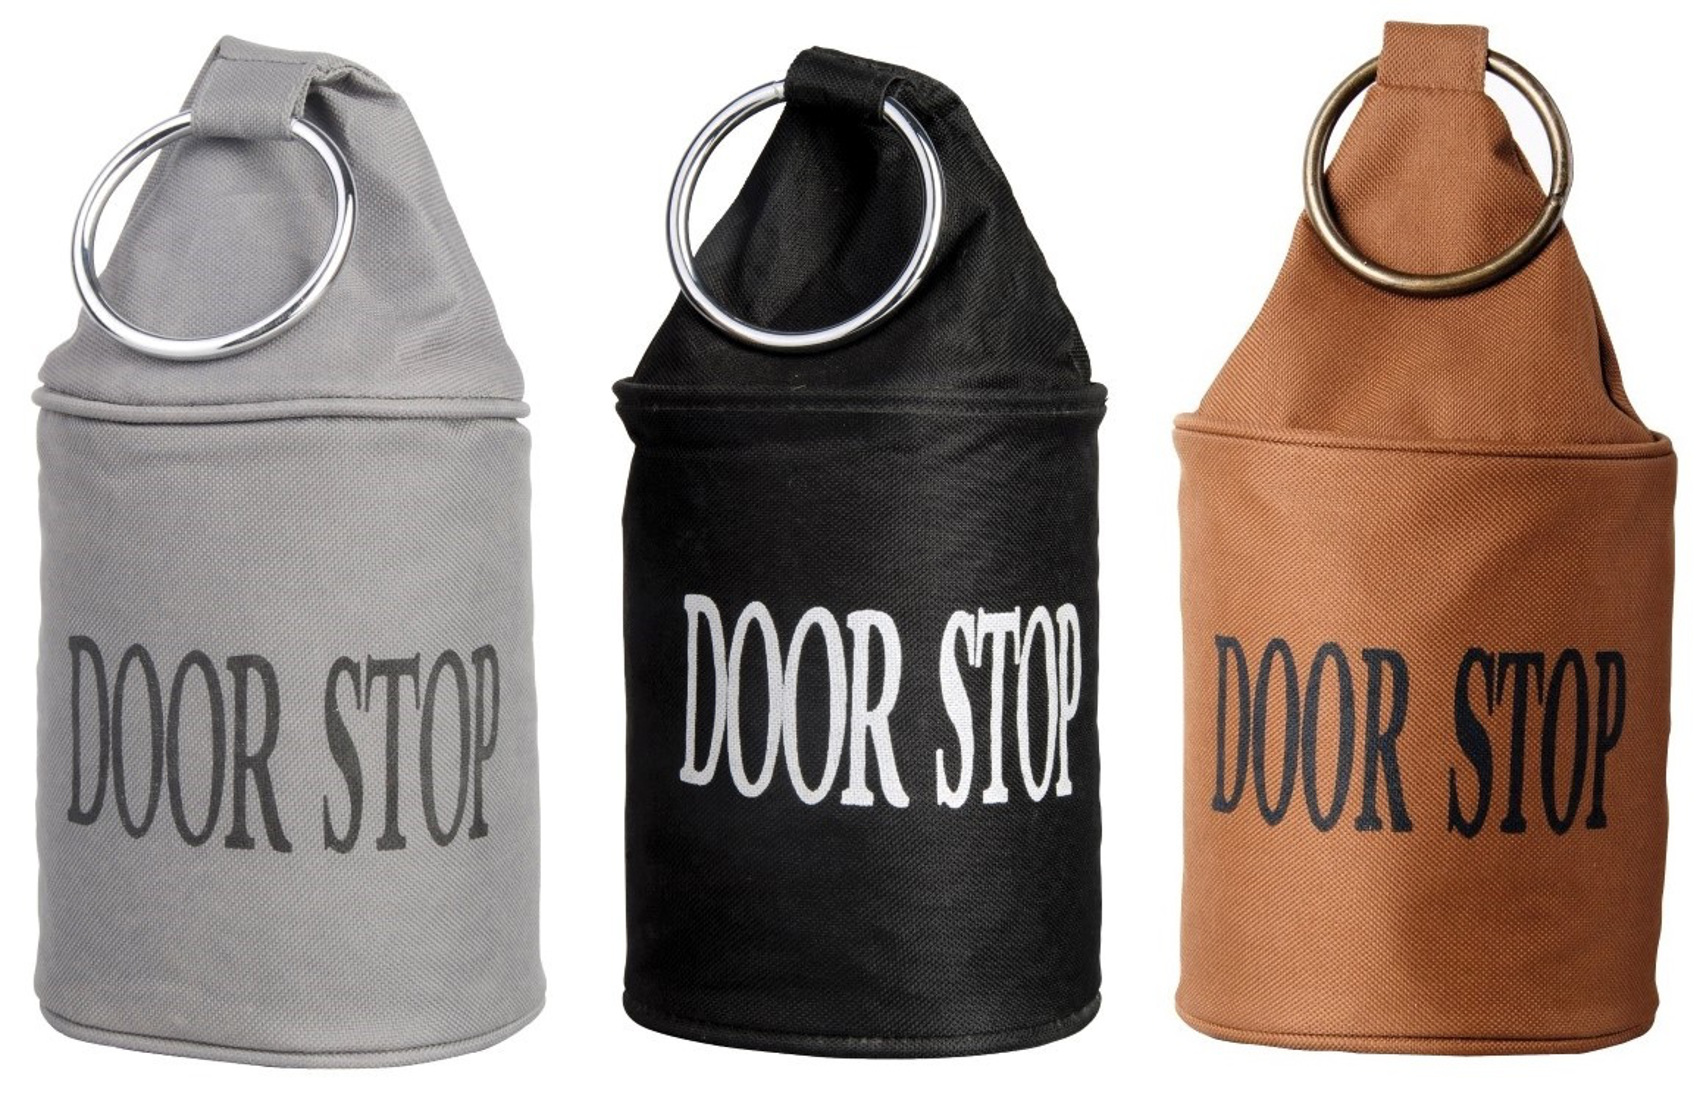 These Heavy Duty Door Stops Have U0027DOOR STOPu0027 Printed On Them And Have A  Metal Ring At The Top. They Are Perfect For Stopping The Door From Swinging  Shut Or ...